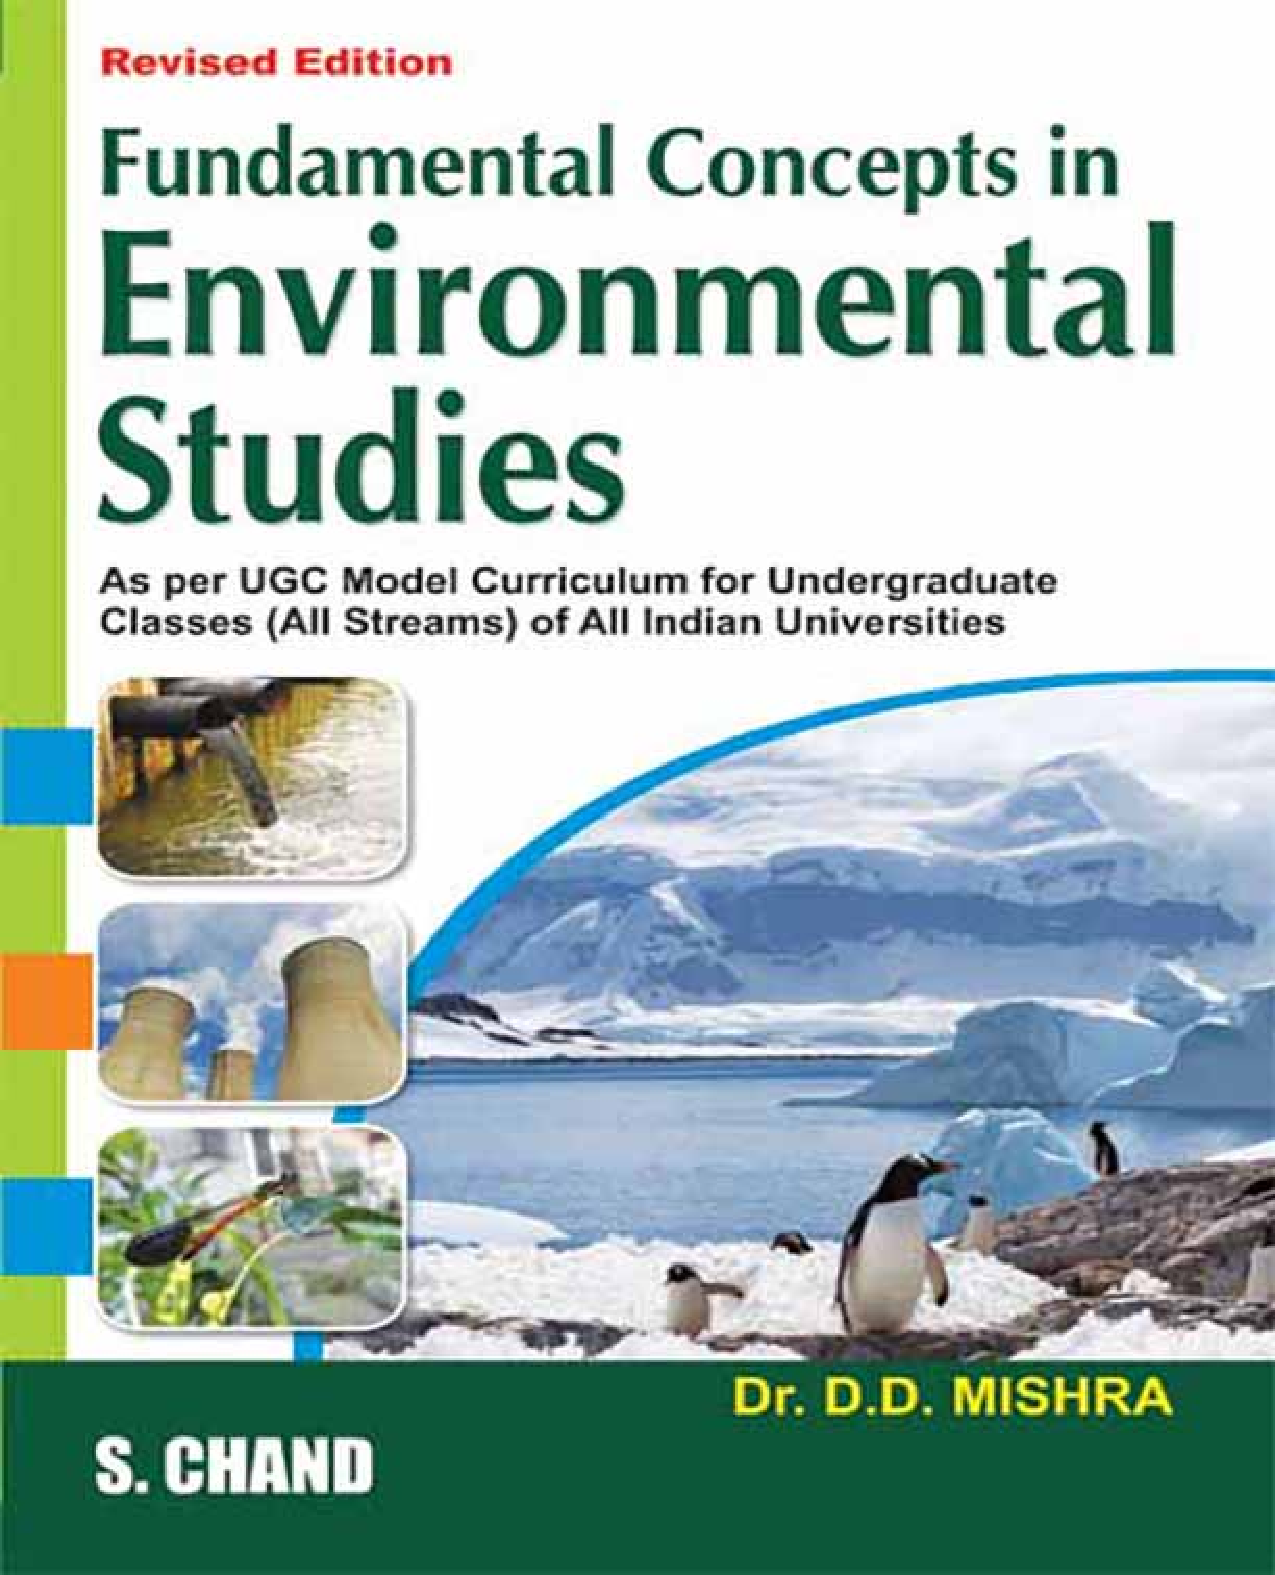 Fundamental Concept In Environmental Studies - Page 1